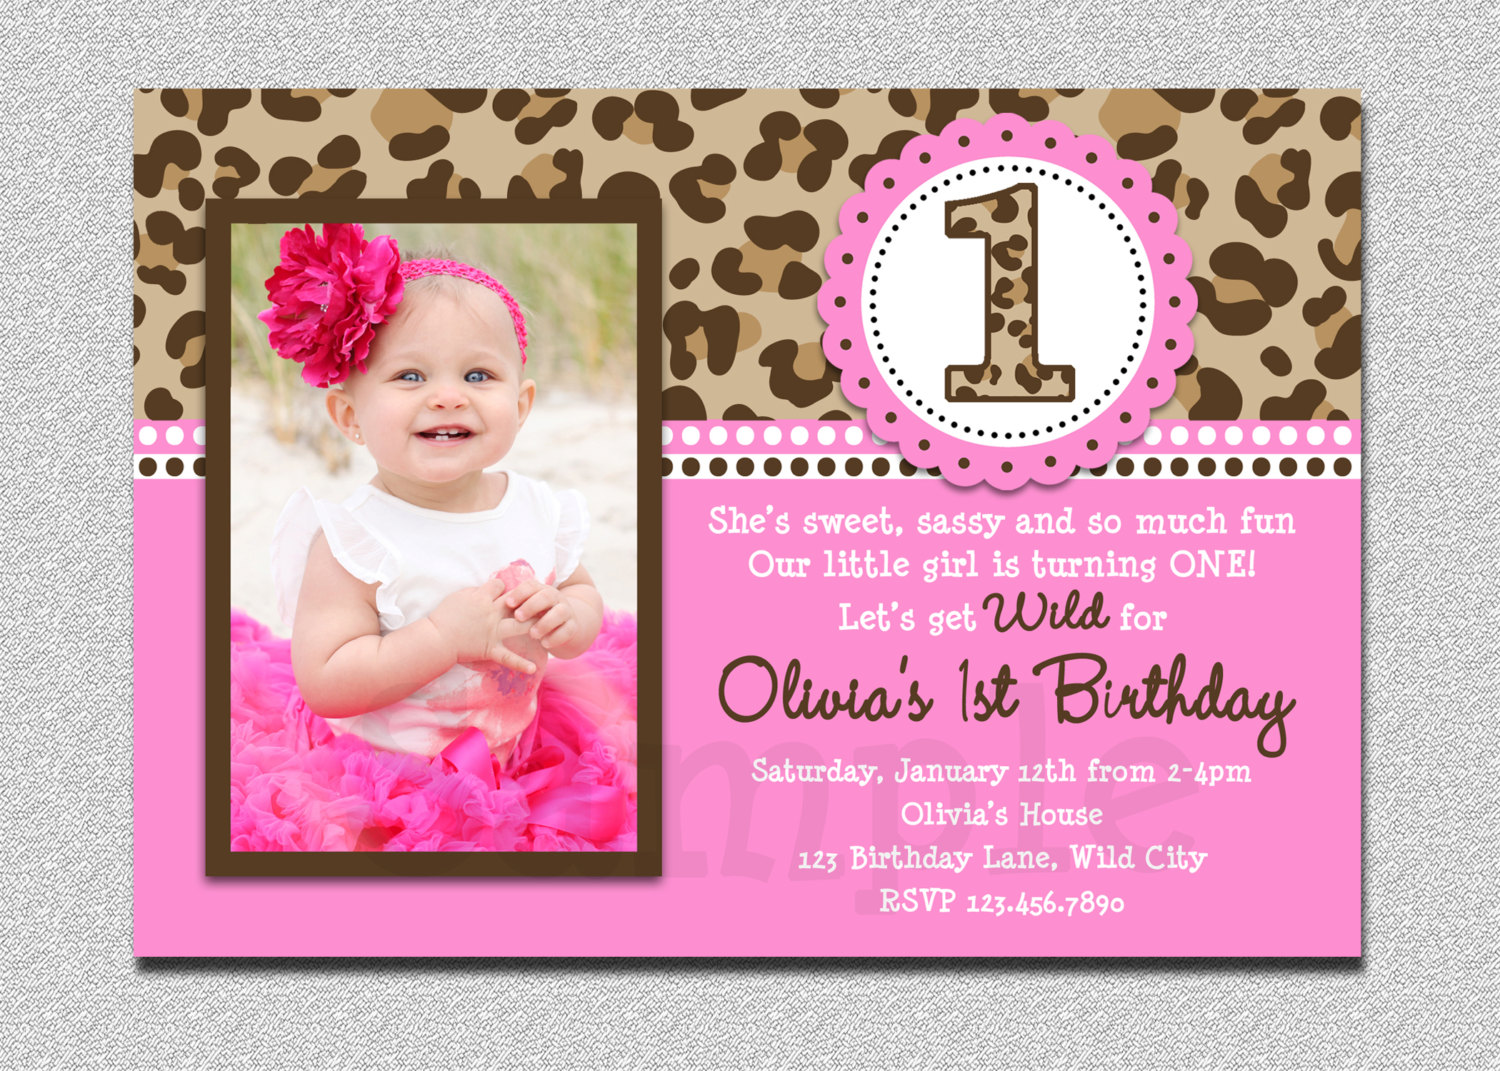 1st birthday invitation cards for daughter ; Exciting-Baby-Girl-First-Birthday-Invitations-Which-You-Need-To-Make-Birthday-Invitation-Wording